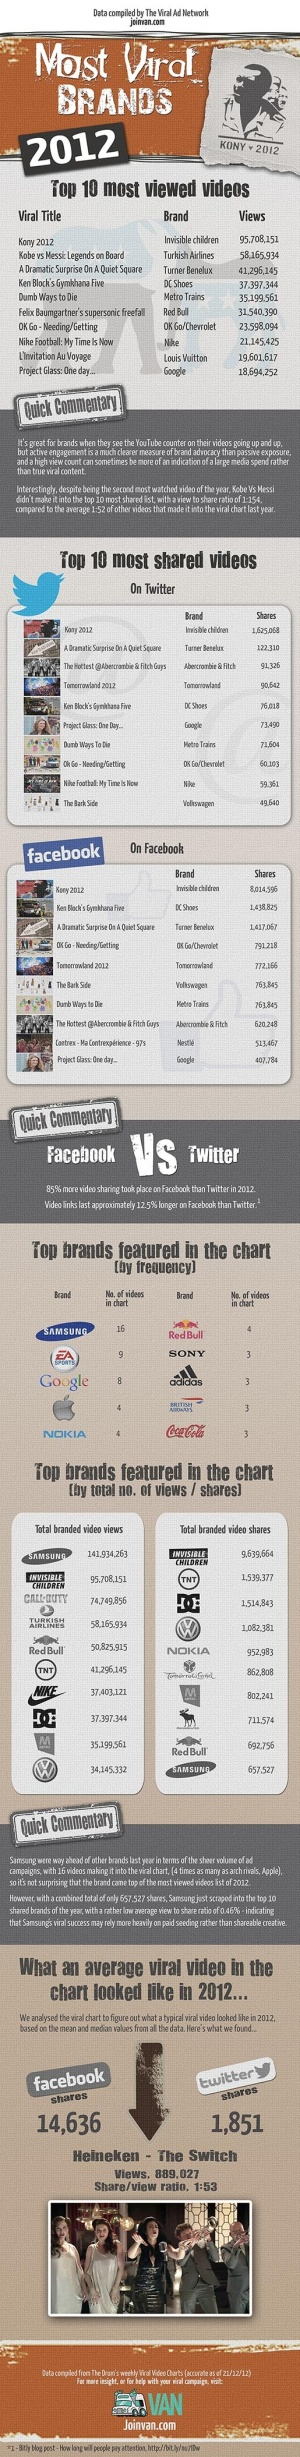 Most viral brands 2012